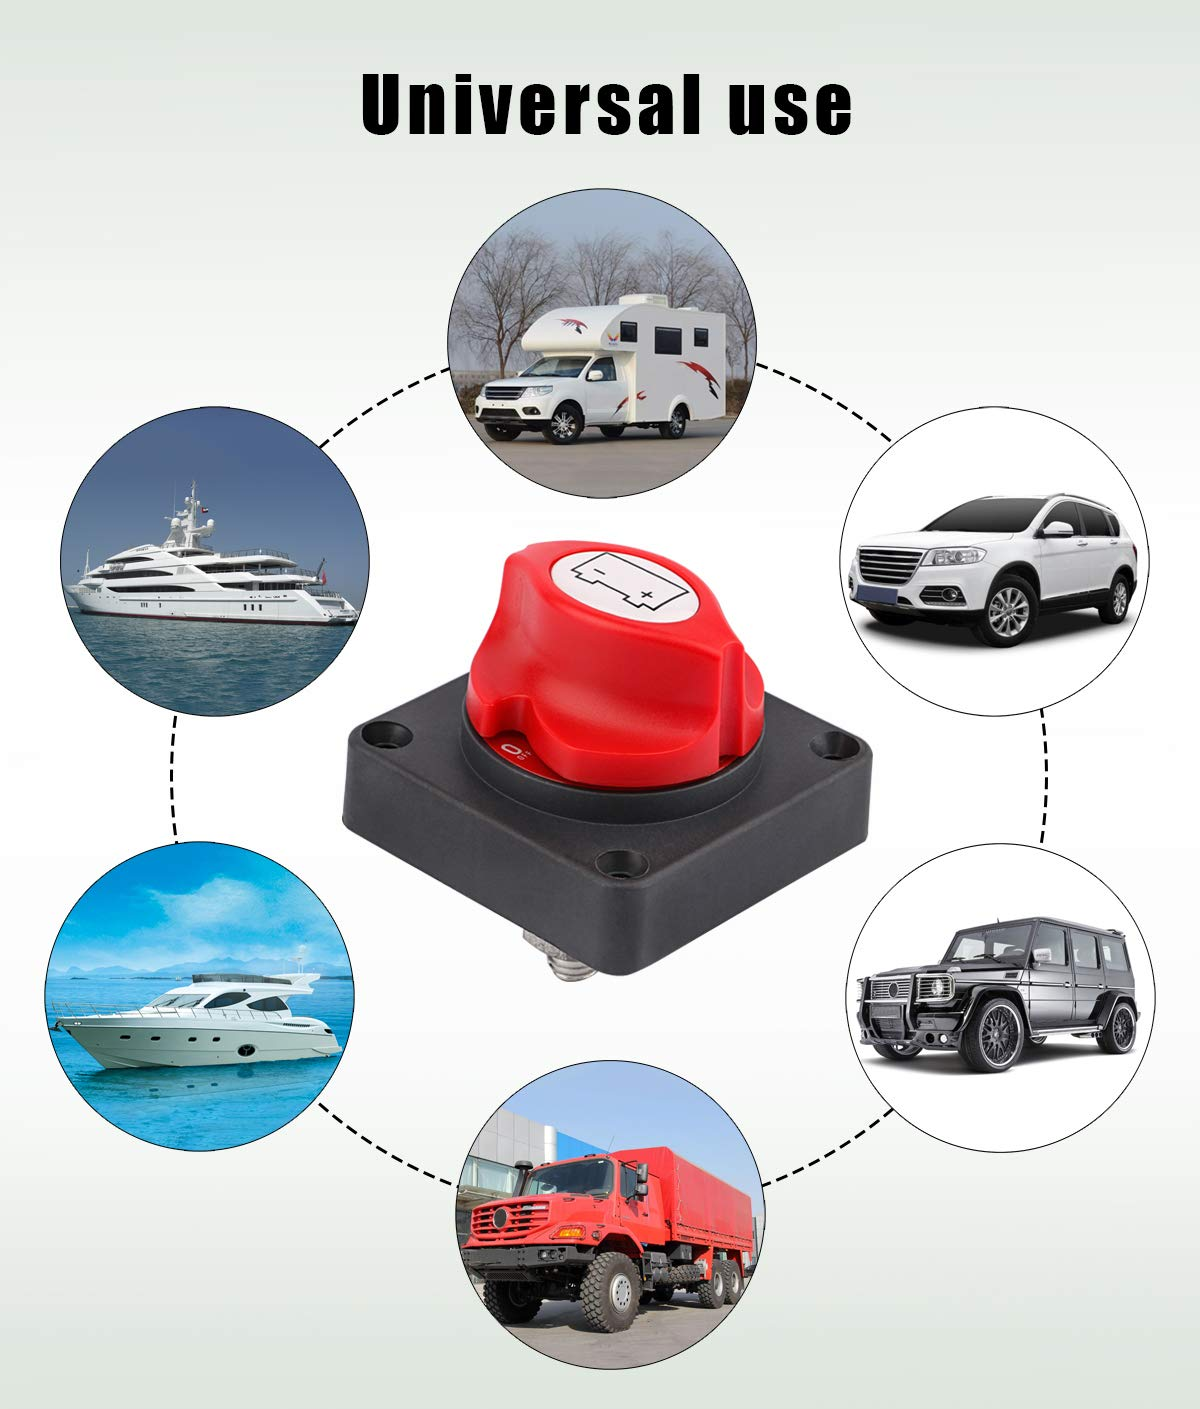 Sdootauto Waterproof Heavy Duty Battery Cutoff Switch Battery Disconnect Power Shut Off Switch for RV Marine Boat Car Vehicle 12V//24V Battery Isolator Master Switch Battery Disconnect Switch